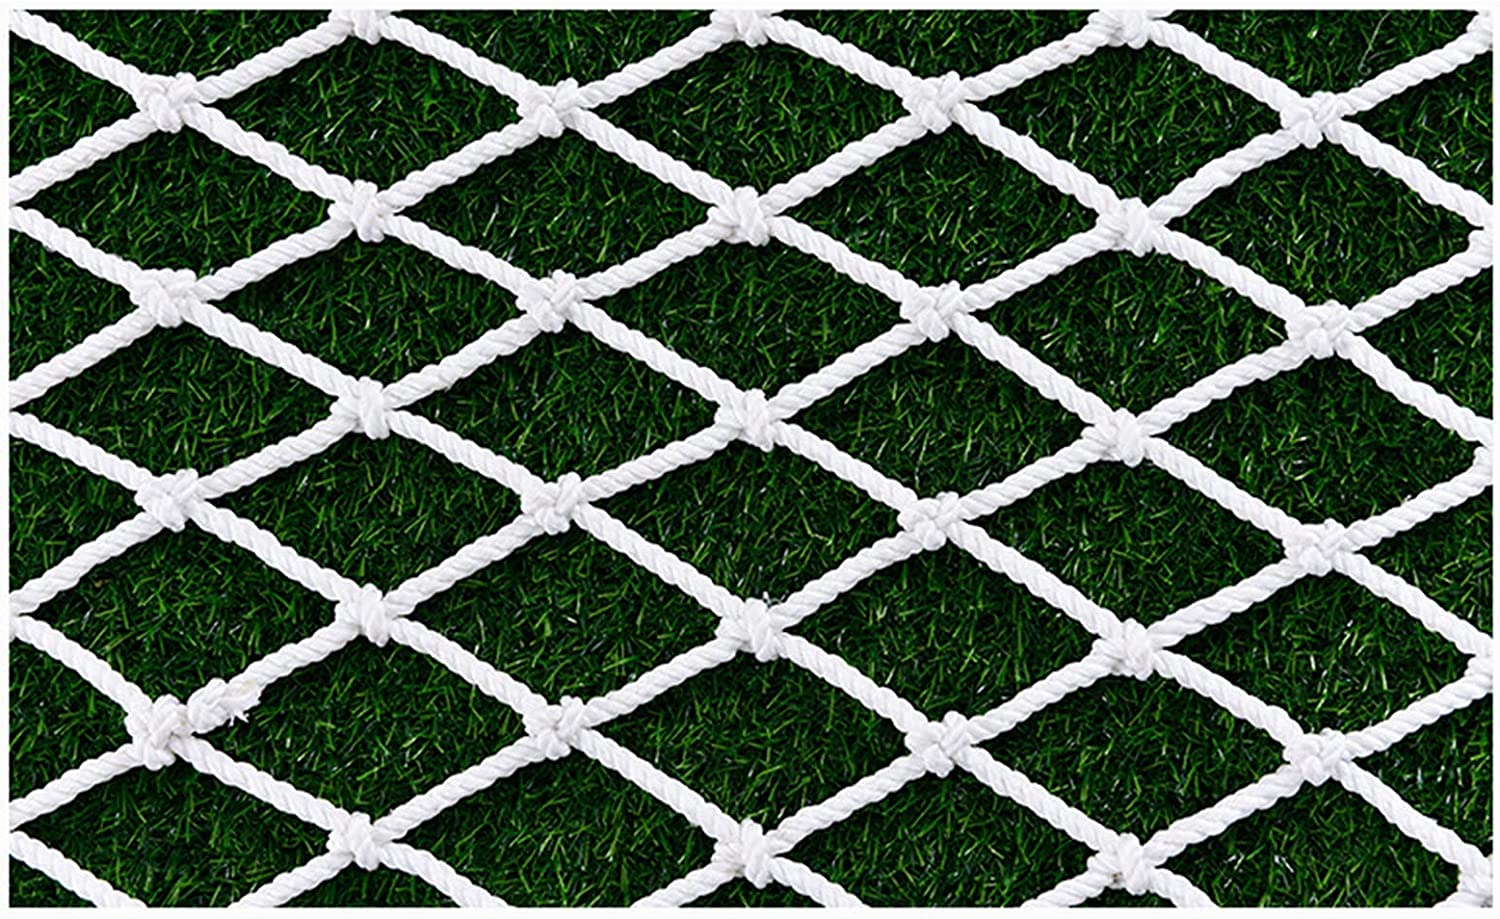 AWSAD Nylon Rope Net Anti Stair Netï Falling Animer and price revision Recommended Railing Protection